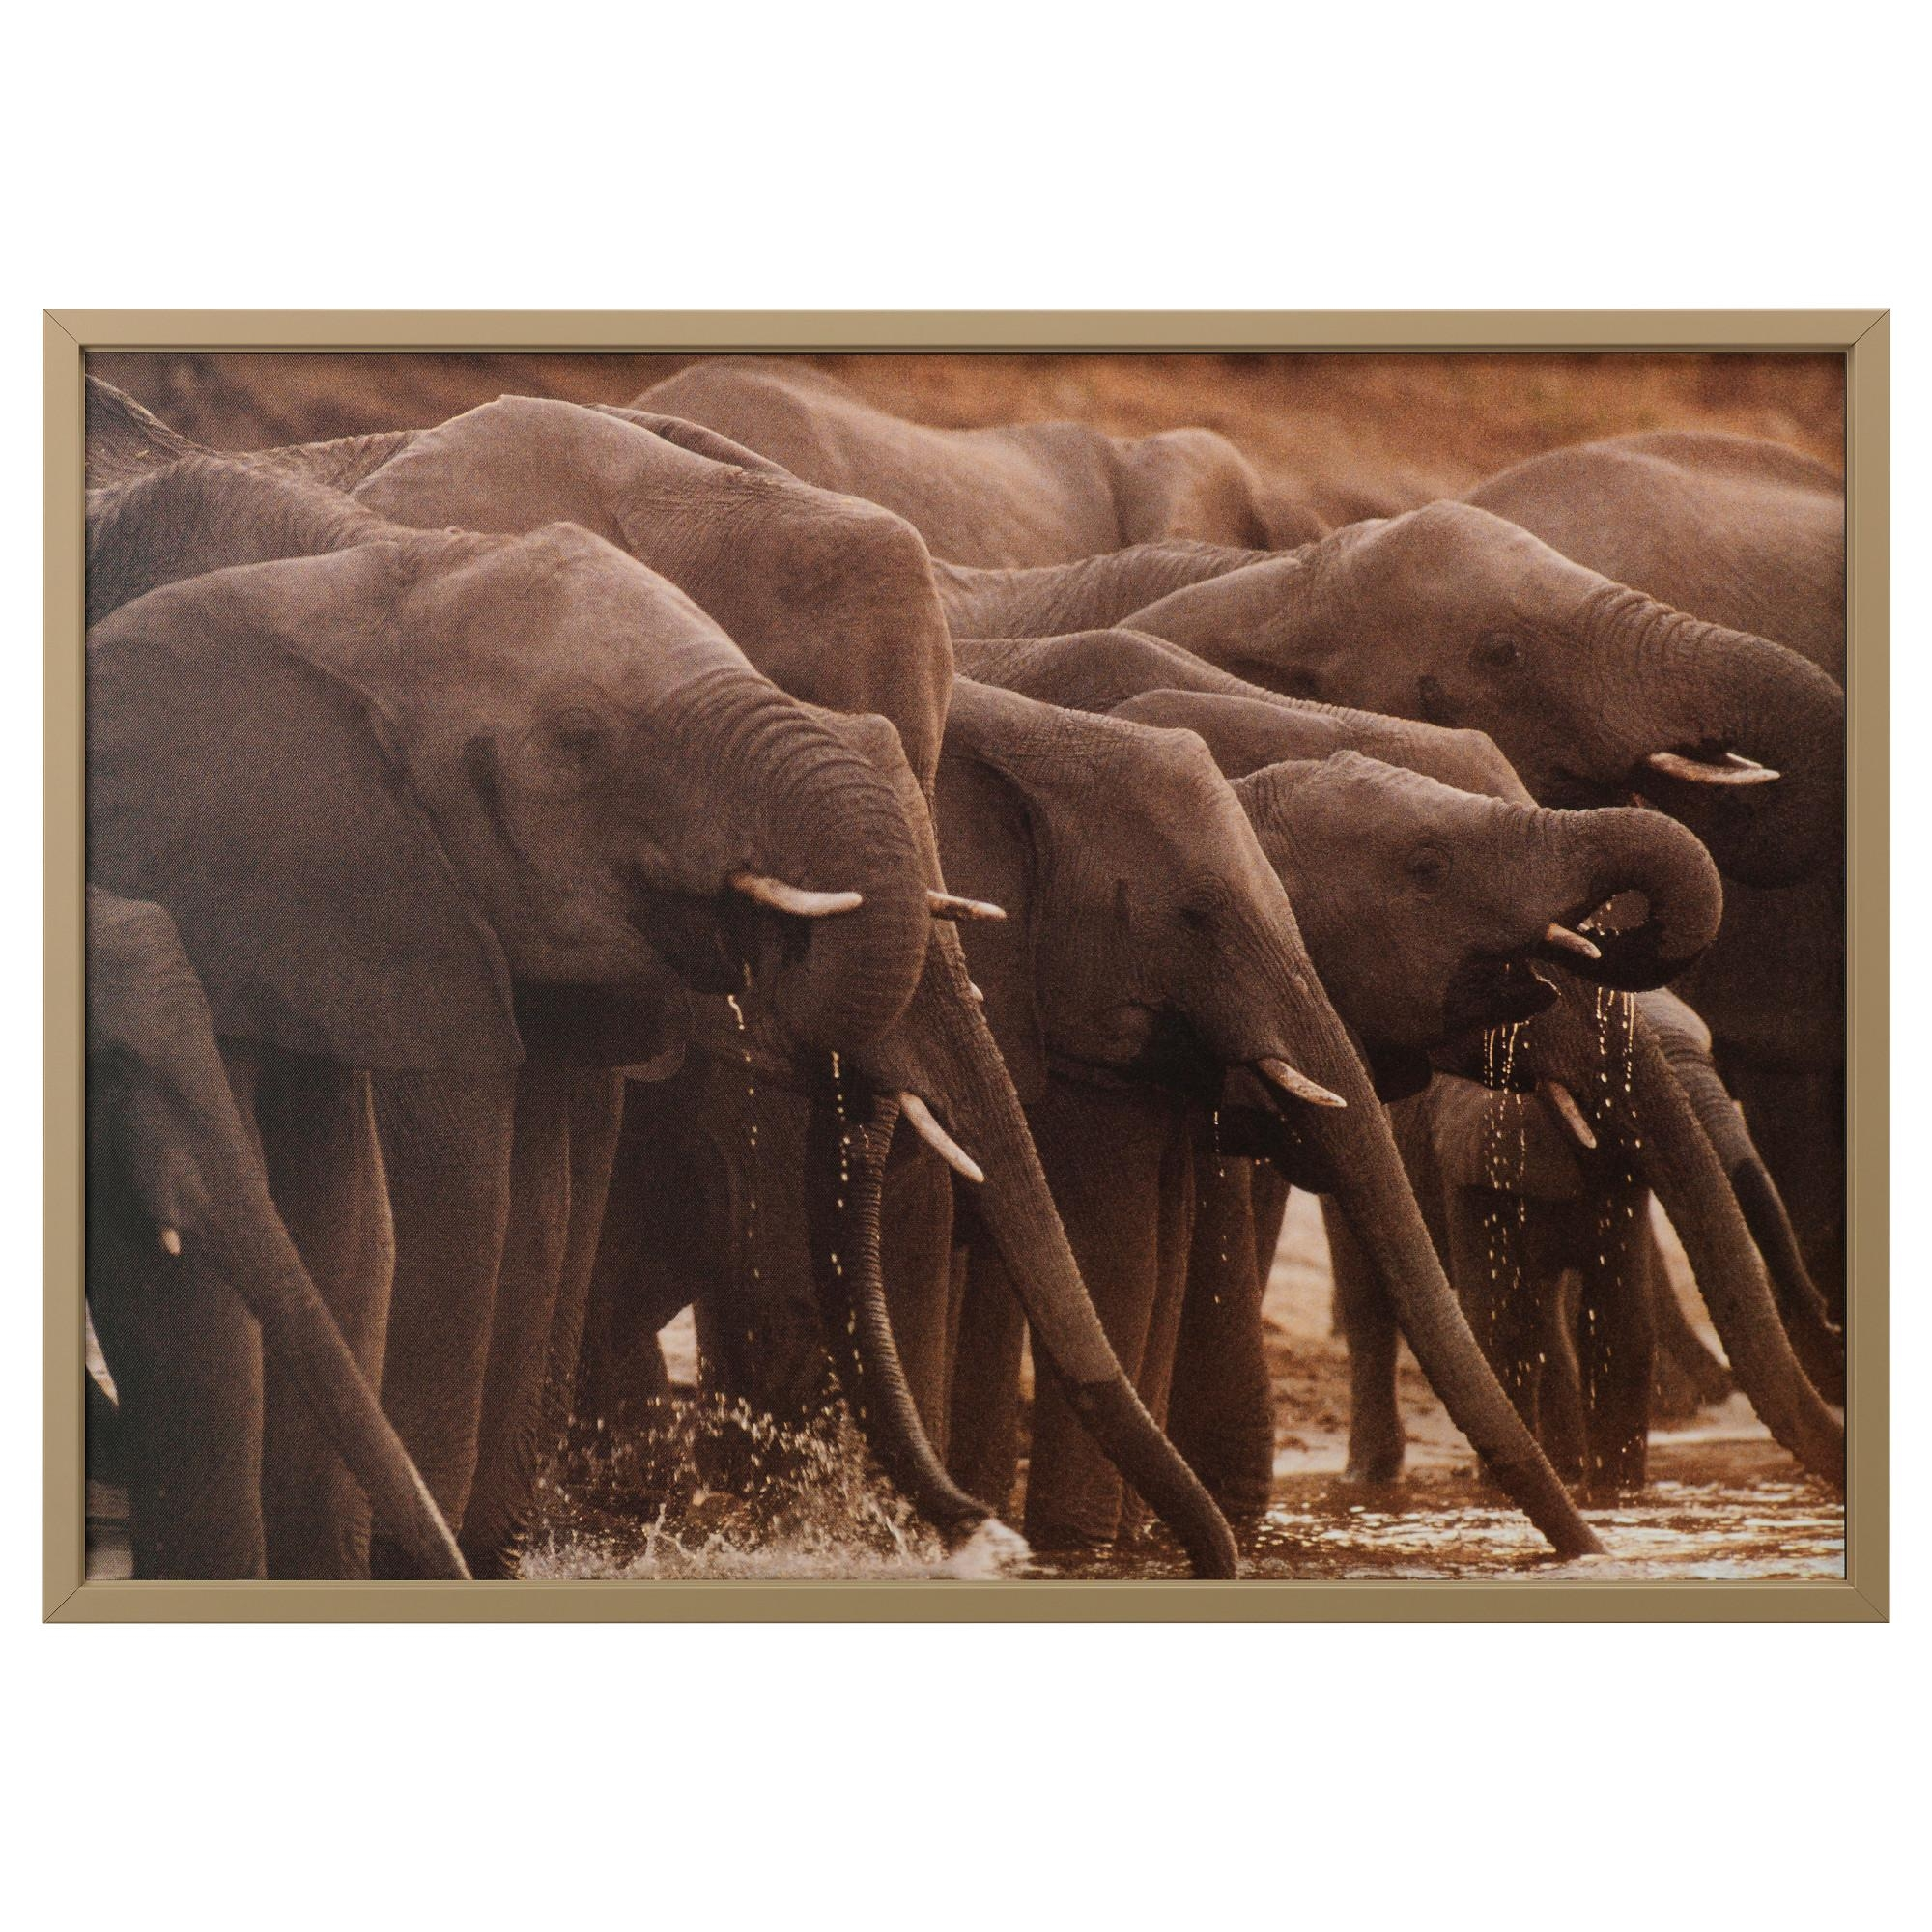 Canvas Prints & Art – Framed Pictures – Ikea Within Ikea Large Wall Art (Image 2 of 20)